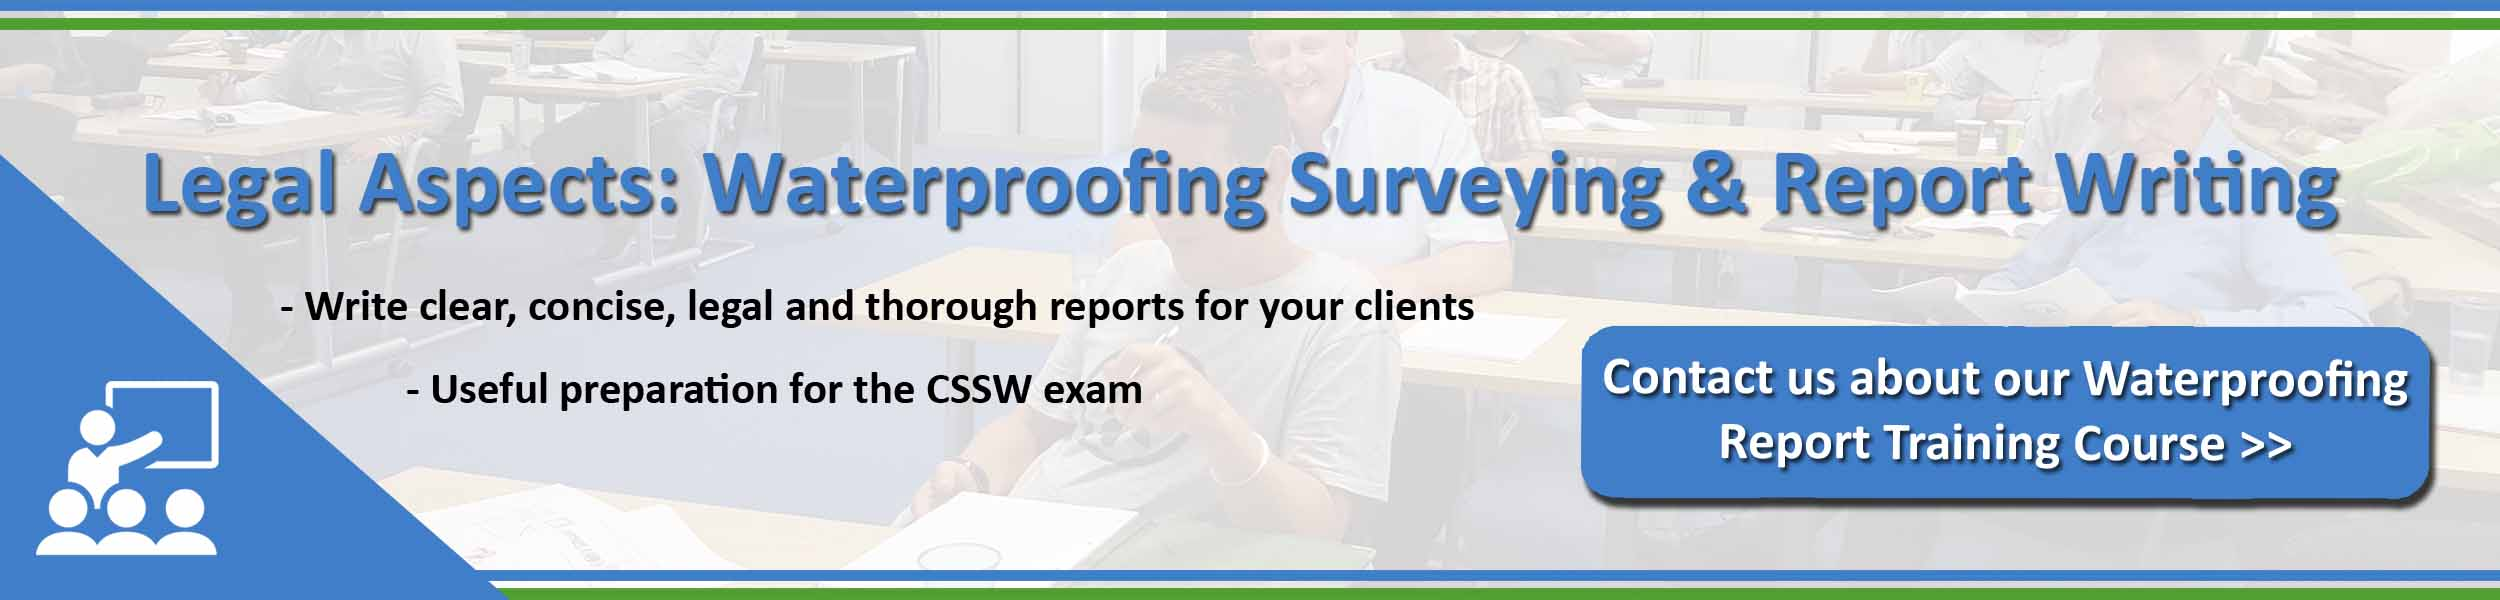 Legal Aspects - Waterpoofing surveying and report writing - Property Care Association